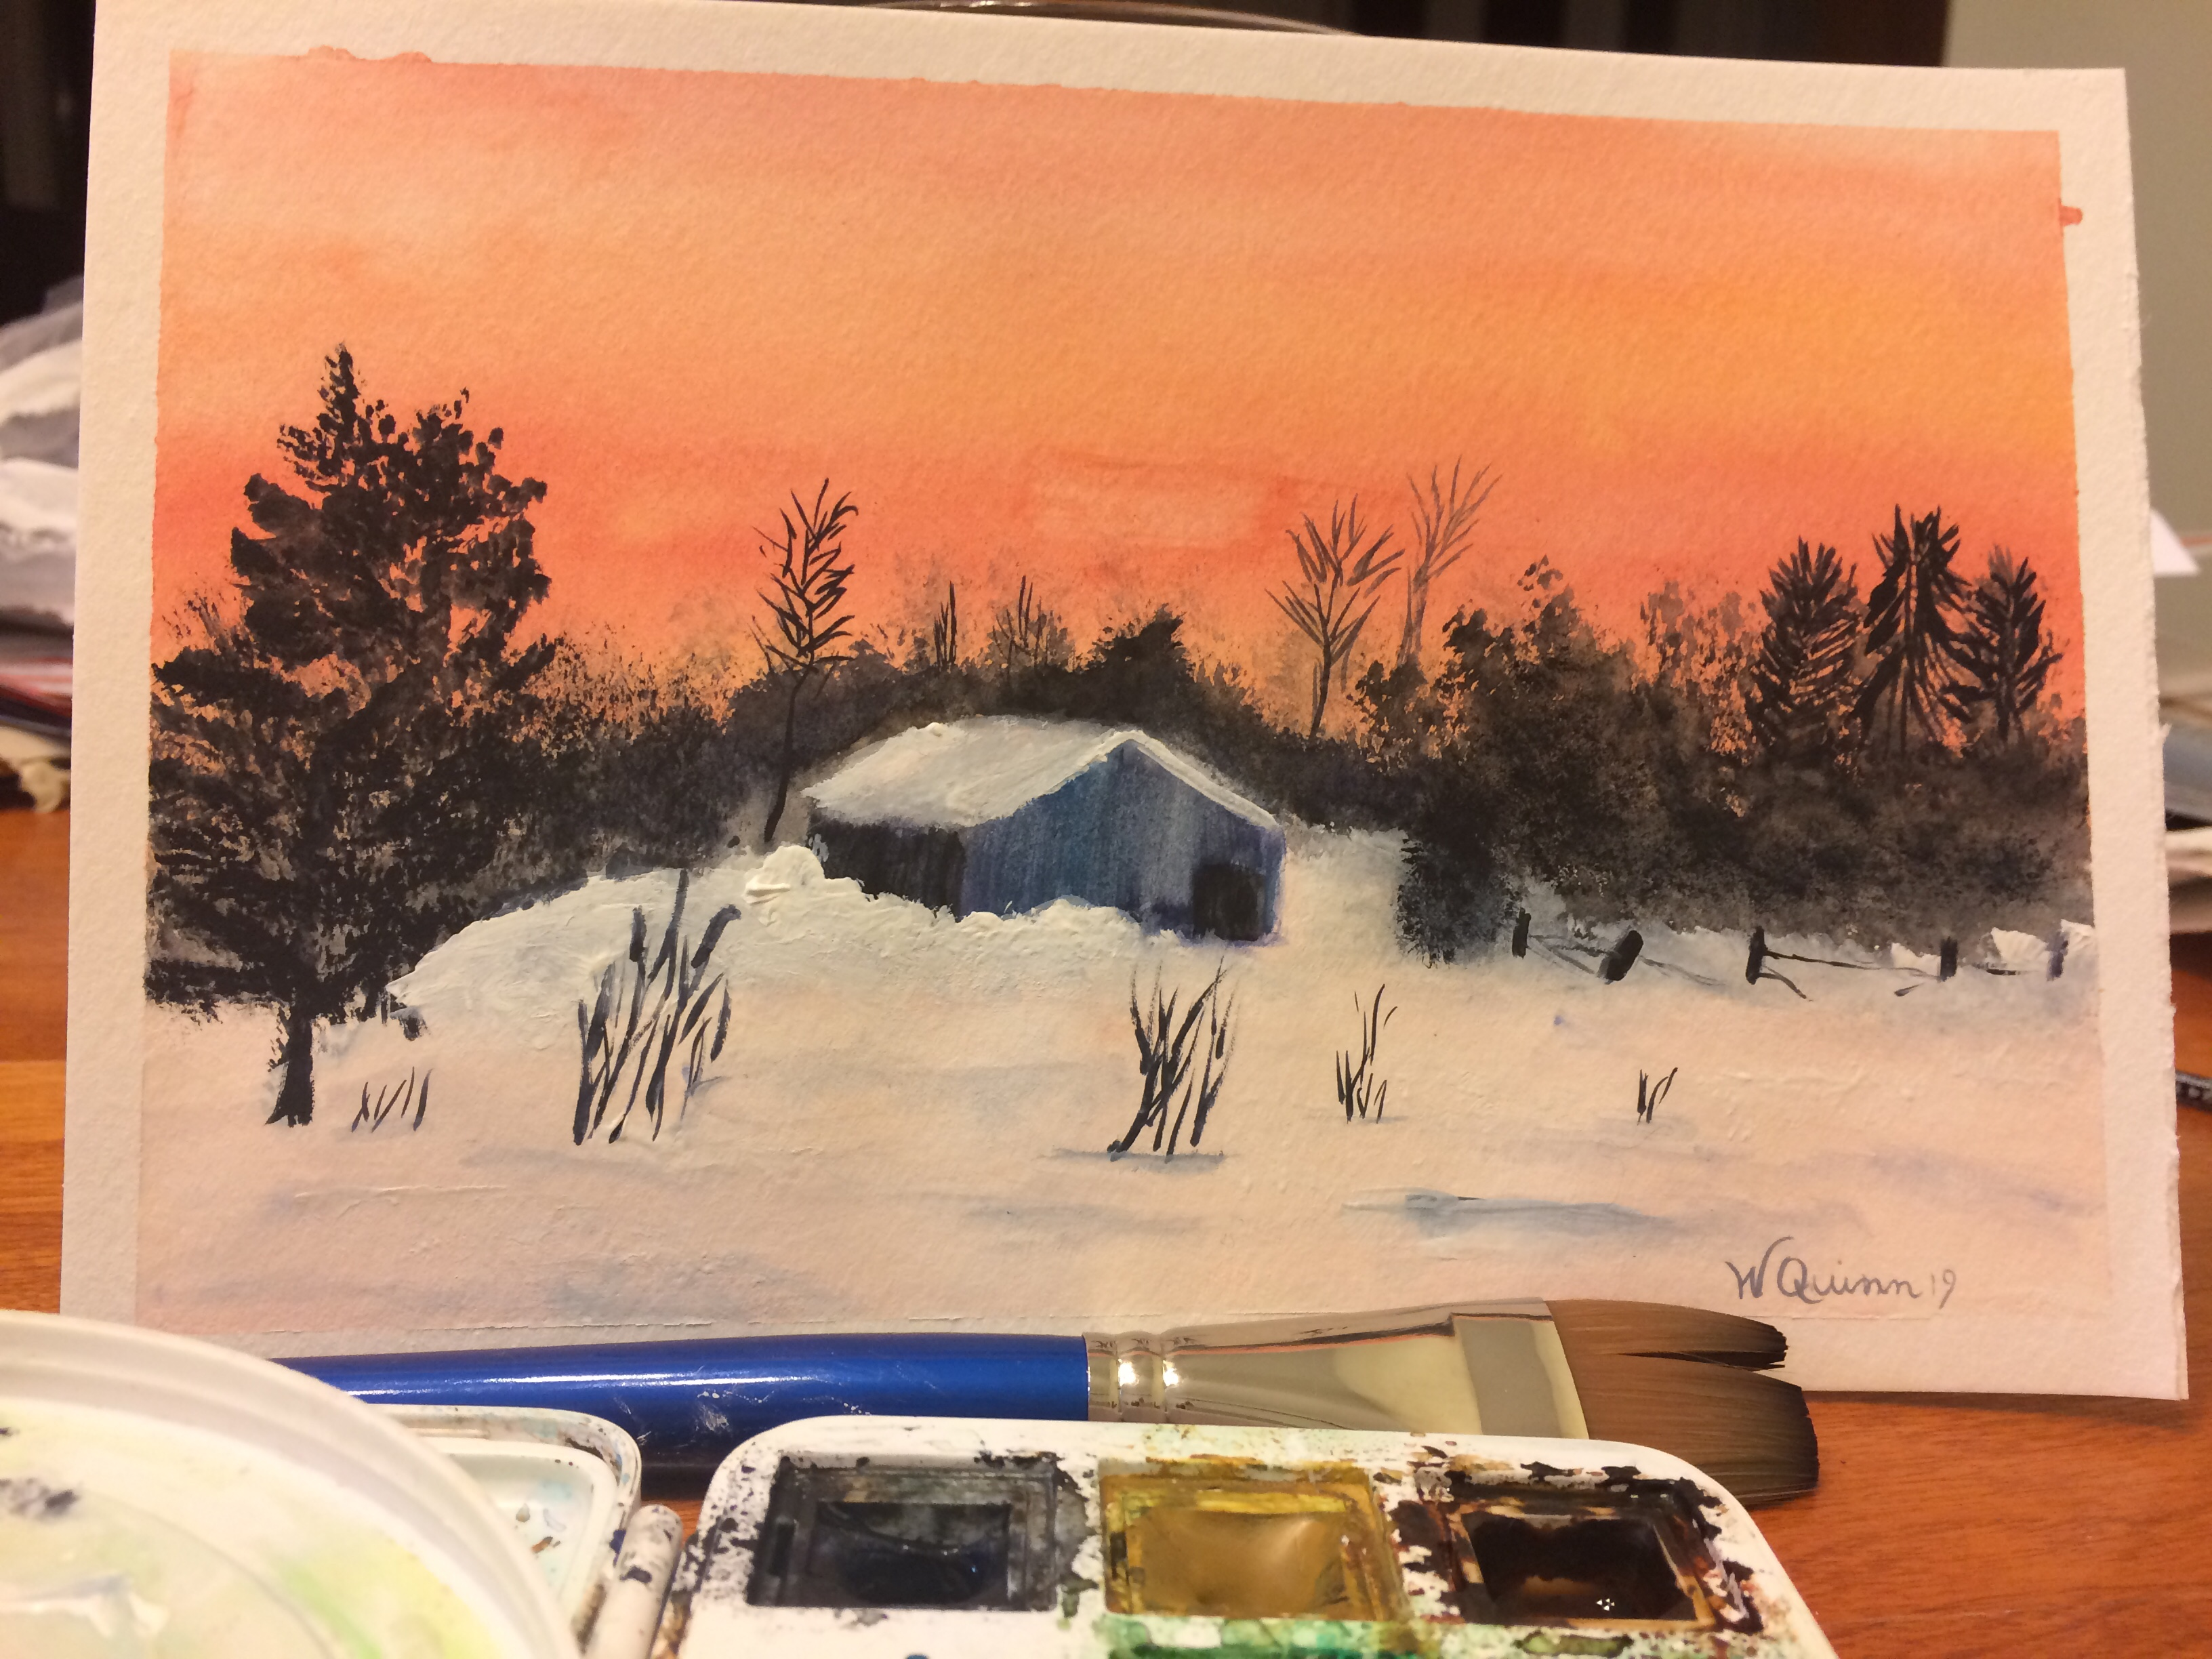 Watercolour painting landscape sunset with a barn in snow